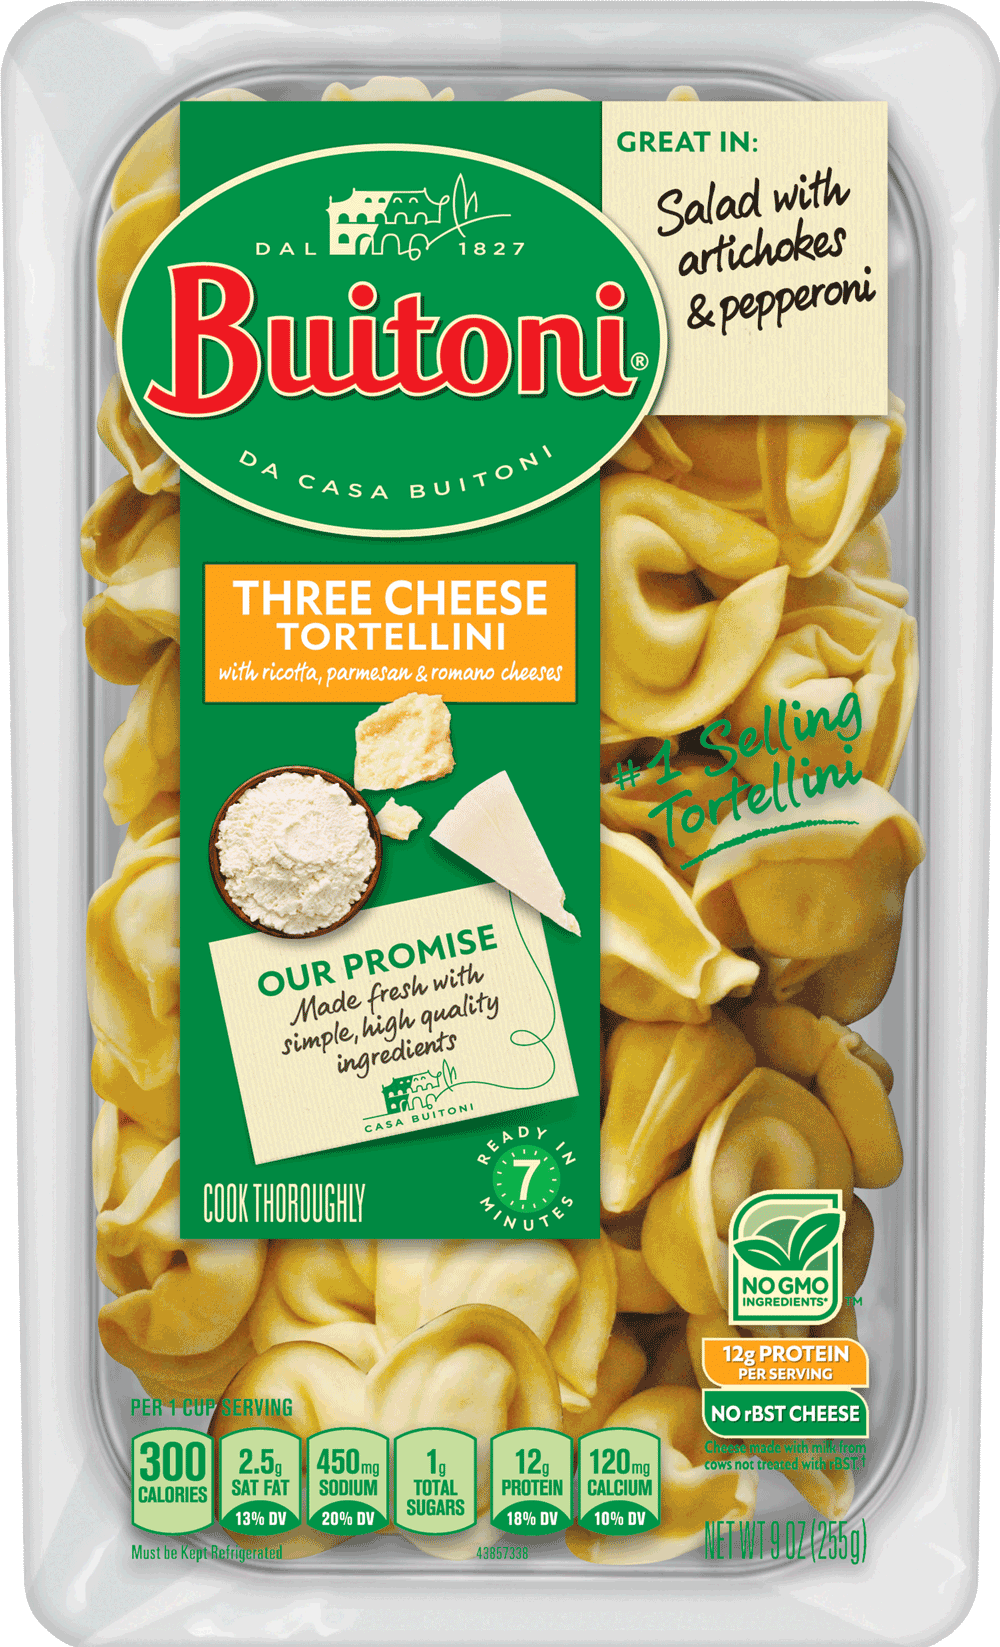 Three Cheese Tortellini